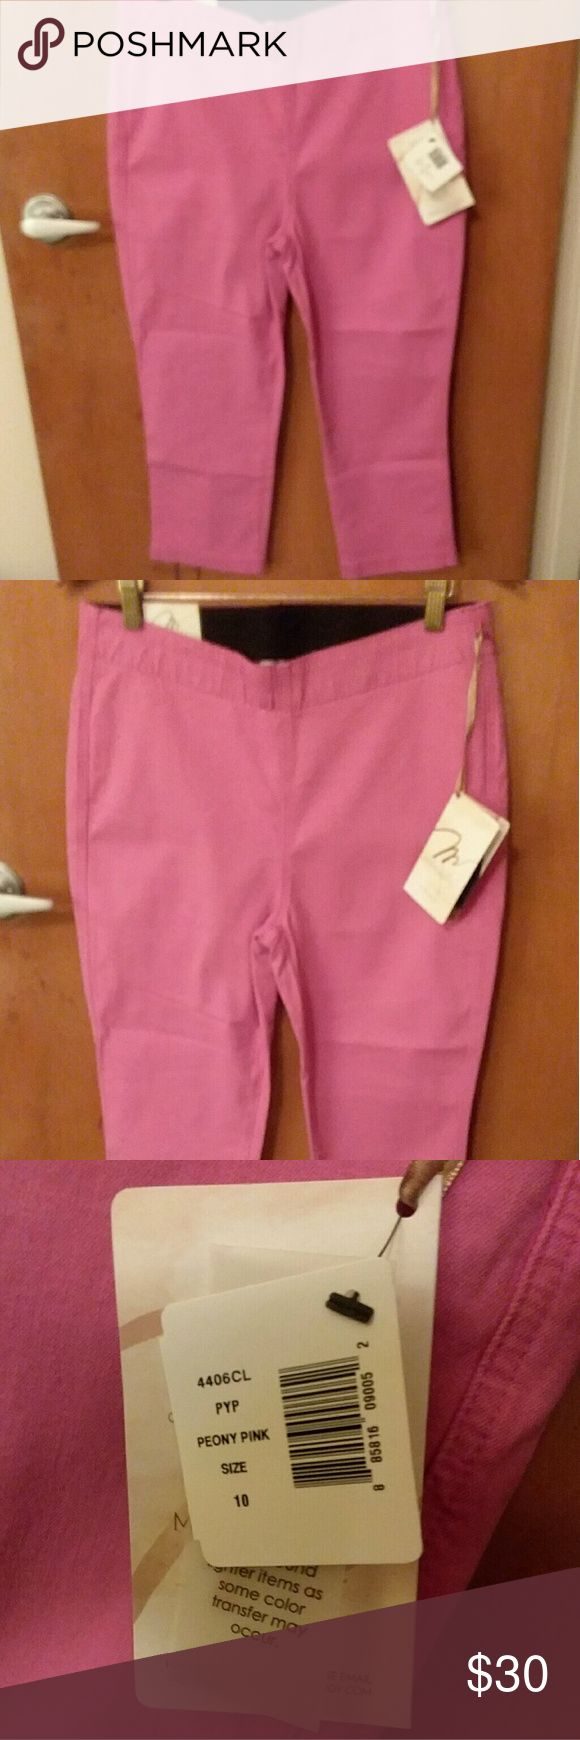 """Miraclebody by Miraclesuit Pink Leggings SZ 10 NWT This is a pair of Miraclebody by Miraclesuit cropped stretch leggings in size ladies 10 in Peony Pink. This item is New With Tags and originally retailed for $70. They are made of cotton, polyester and spandex in a substantial weight fabric. There is an elasticized waistband. Measurements are 31"""" waist, 38"""" hip, 21"""" inseam. There are no pockets. Miraclesuit Pants Leggings"""